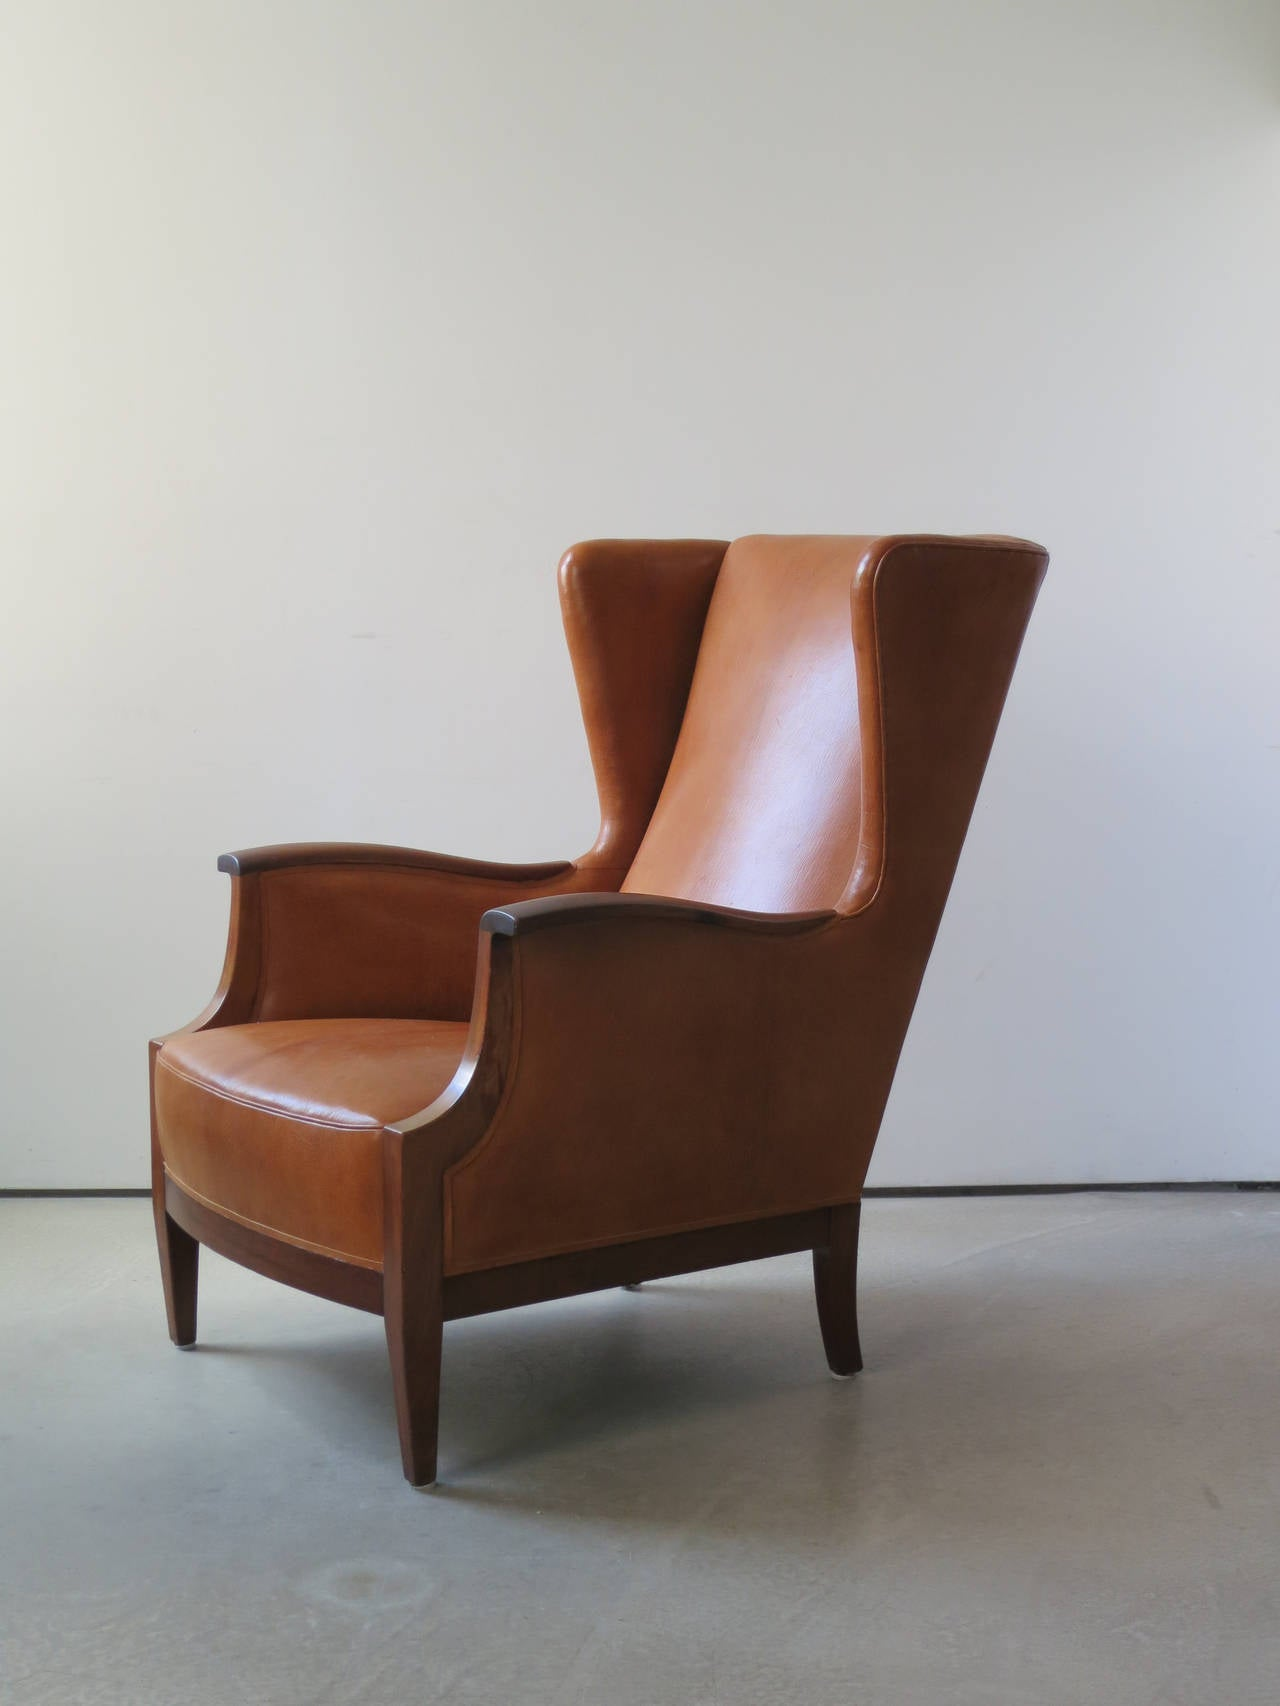 1930s Wingback Chair in Nigerian Leather and Cuban Mahogany by